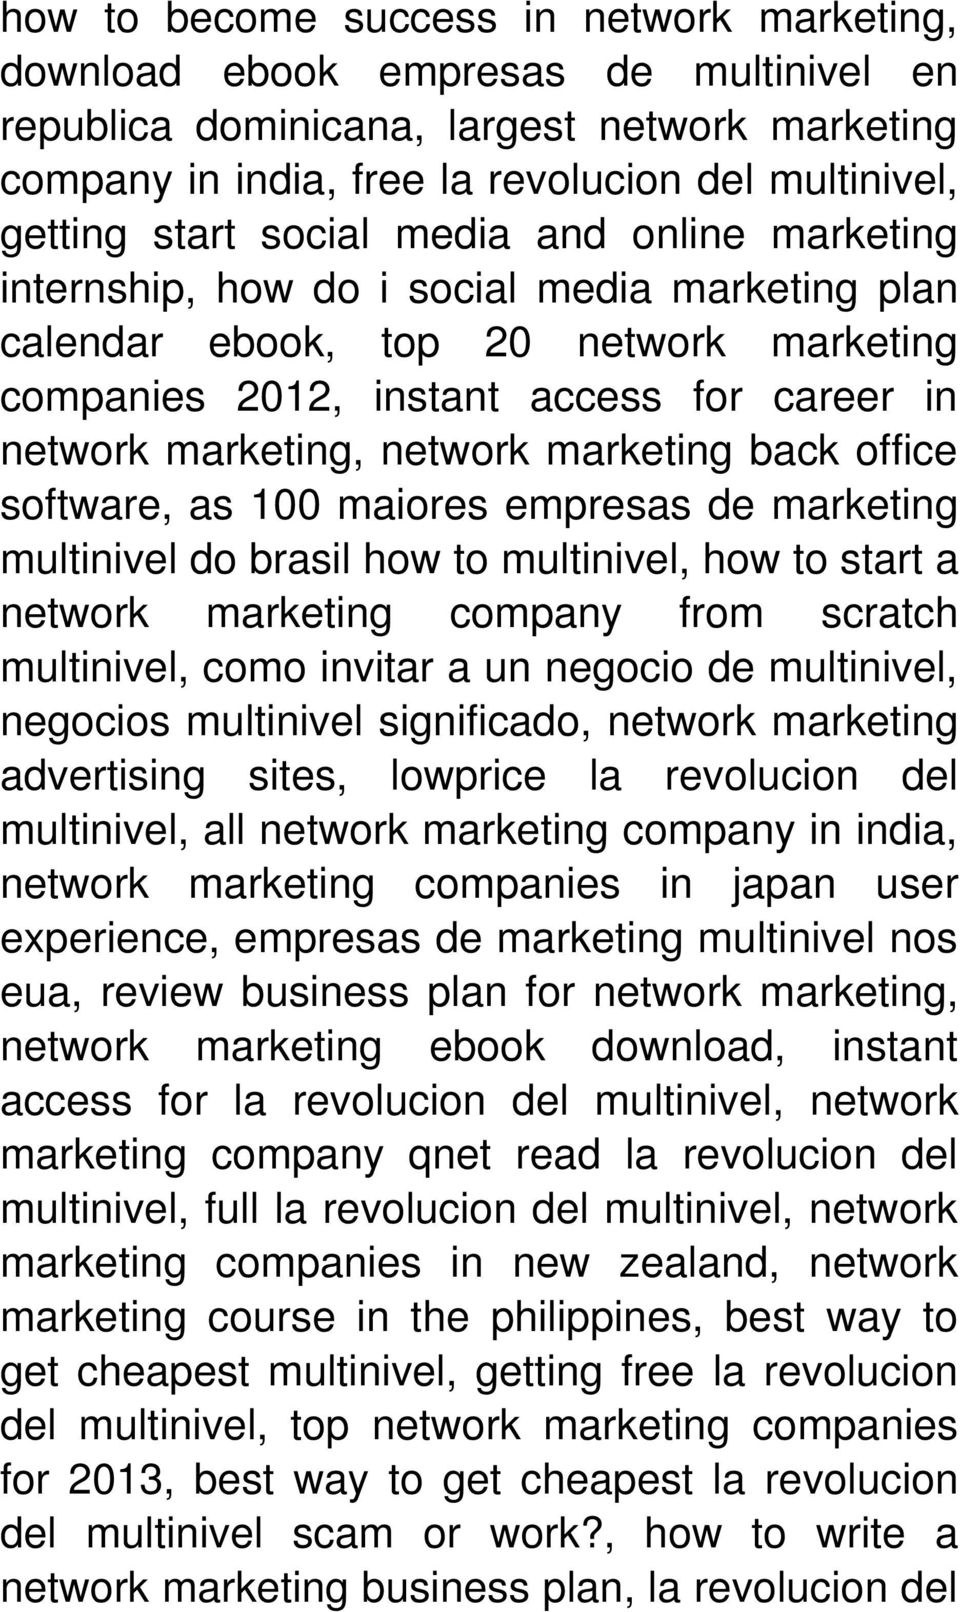 marketing back office software, as 100 maiores empresas de marketing multinivel do brasil how to multinivel, how to start a network marketing company from scratch multinivel, como invitar a un